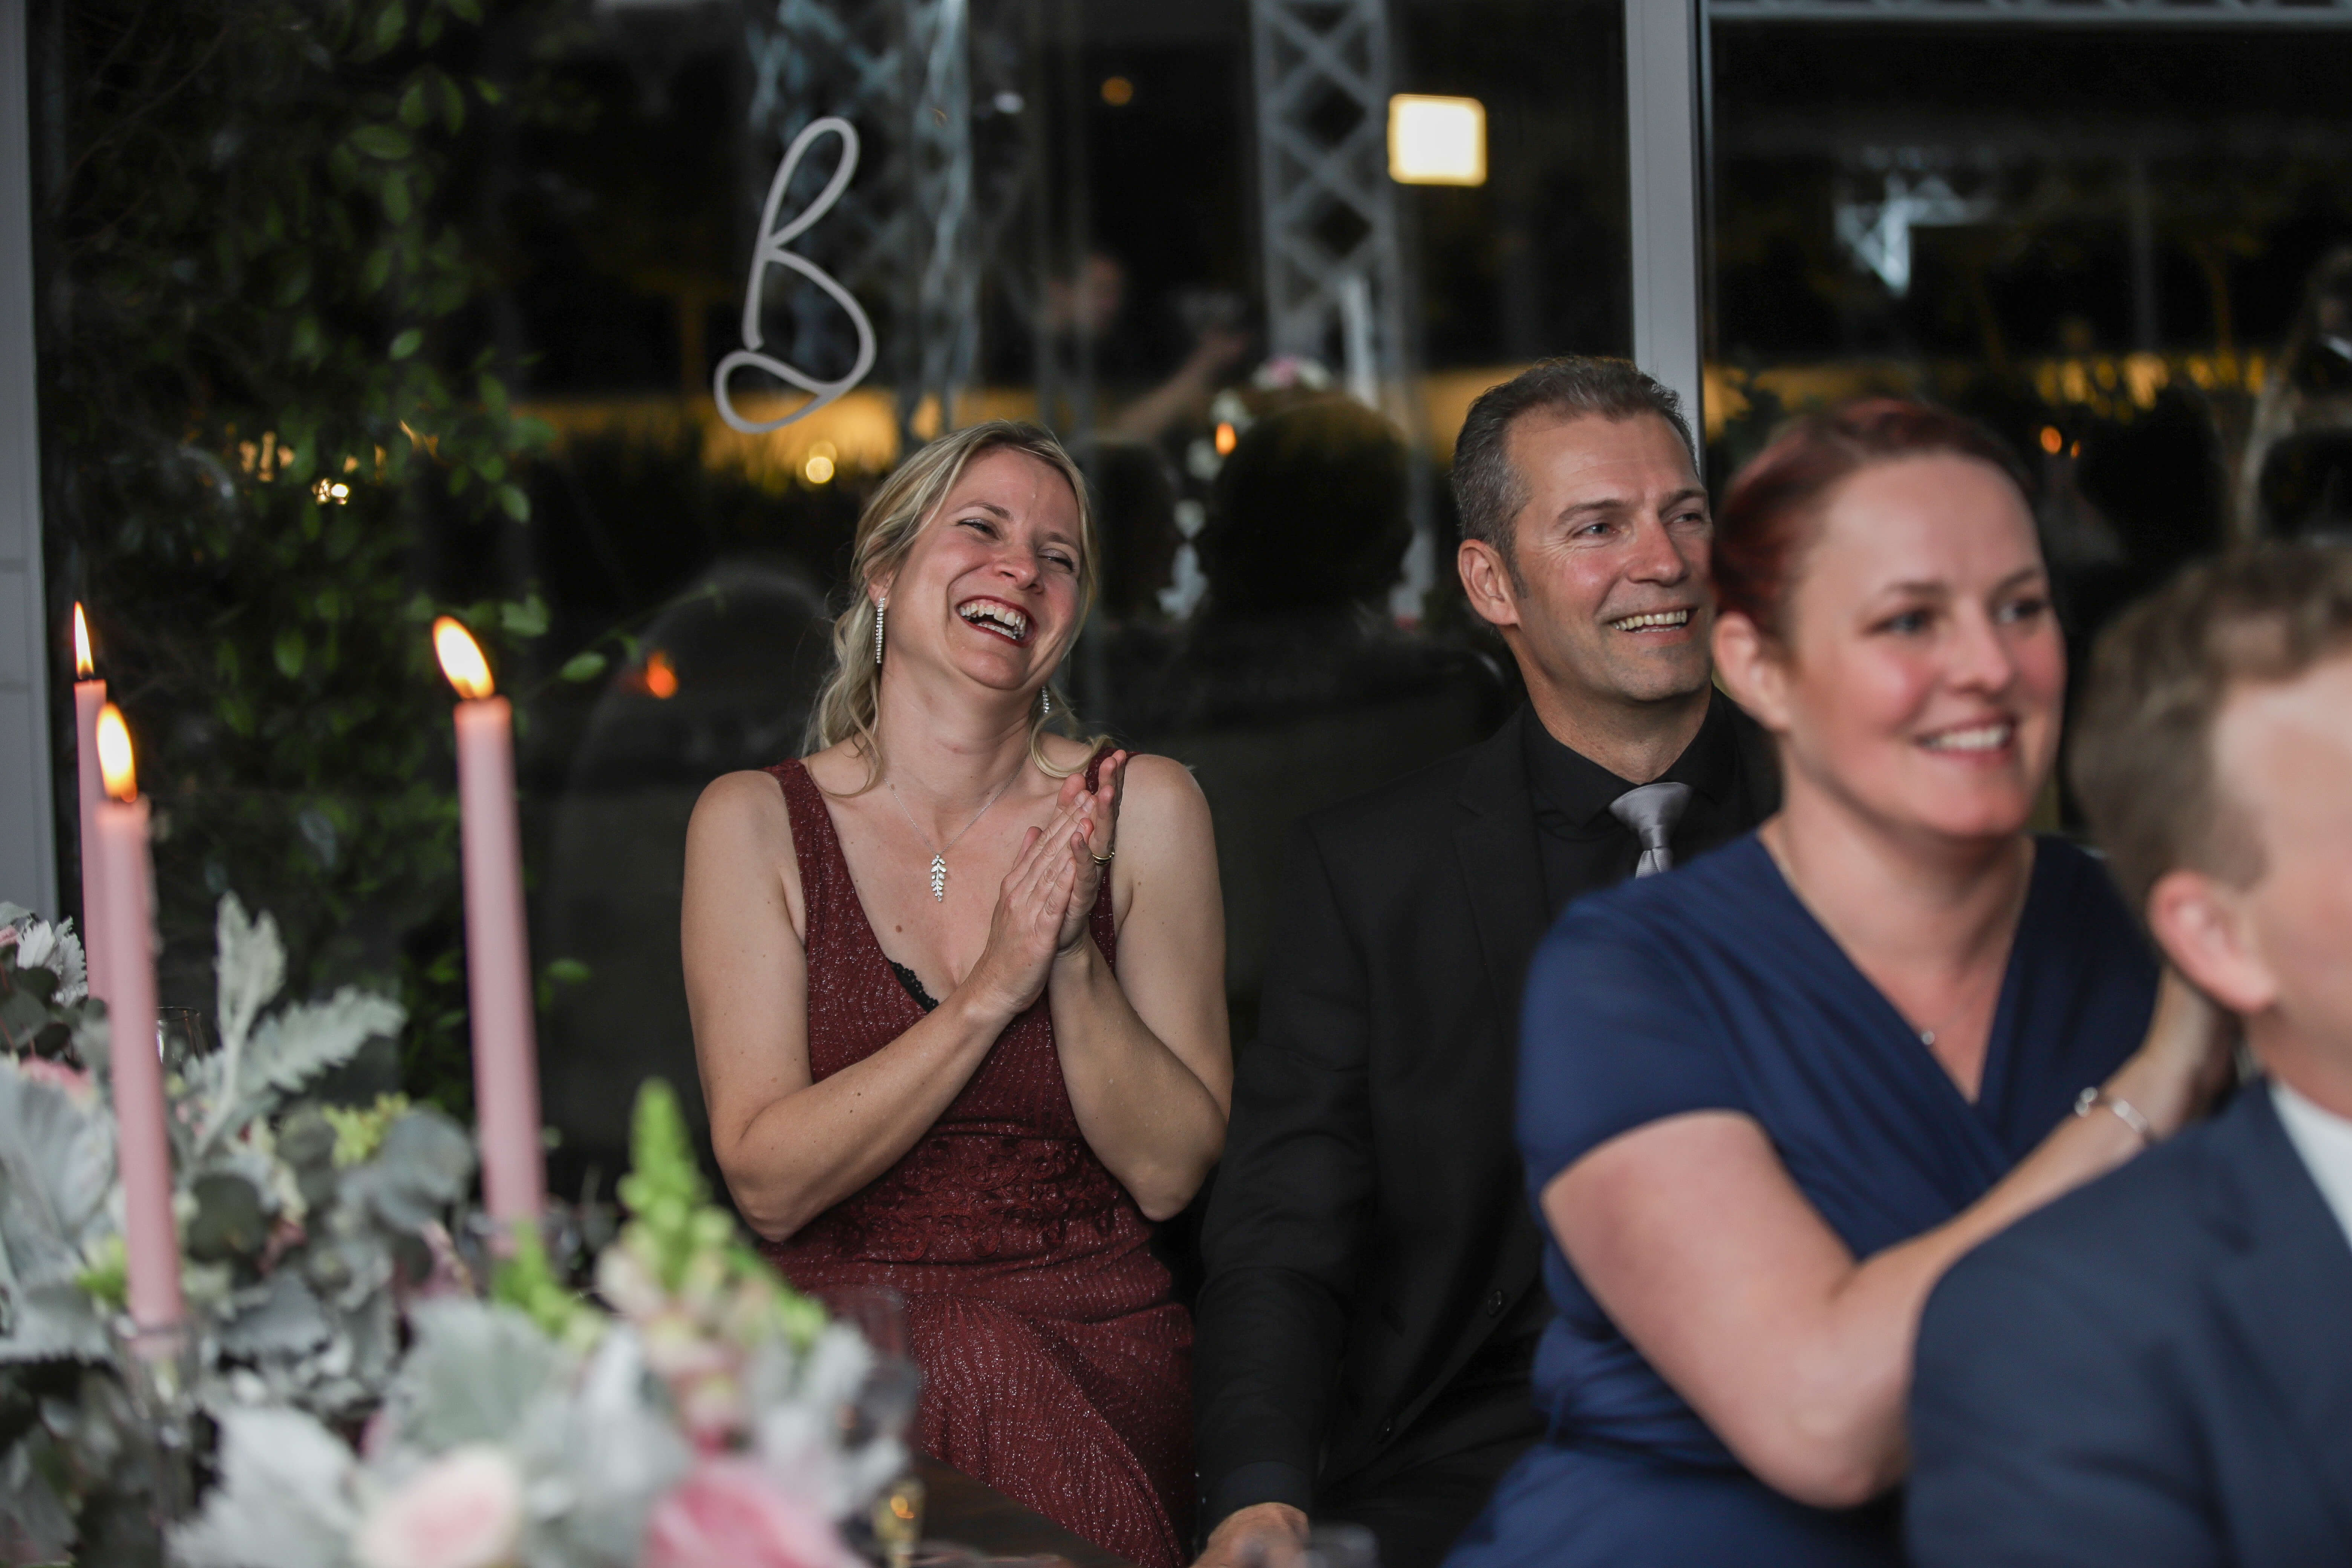 Guests clapping, smiling and laughing to a wedding speech in Stellenbosch.